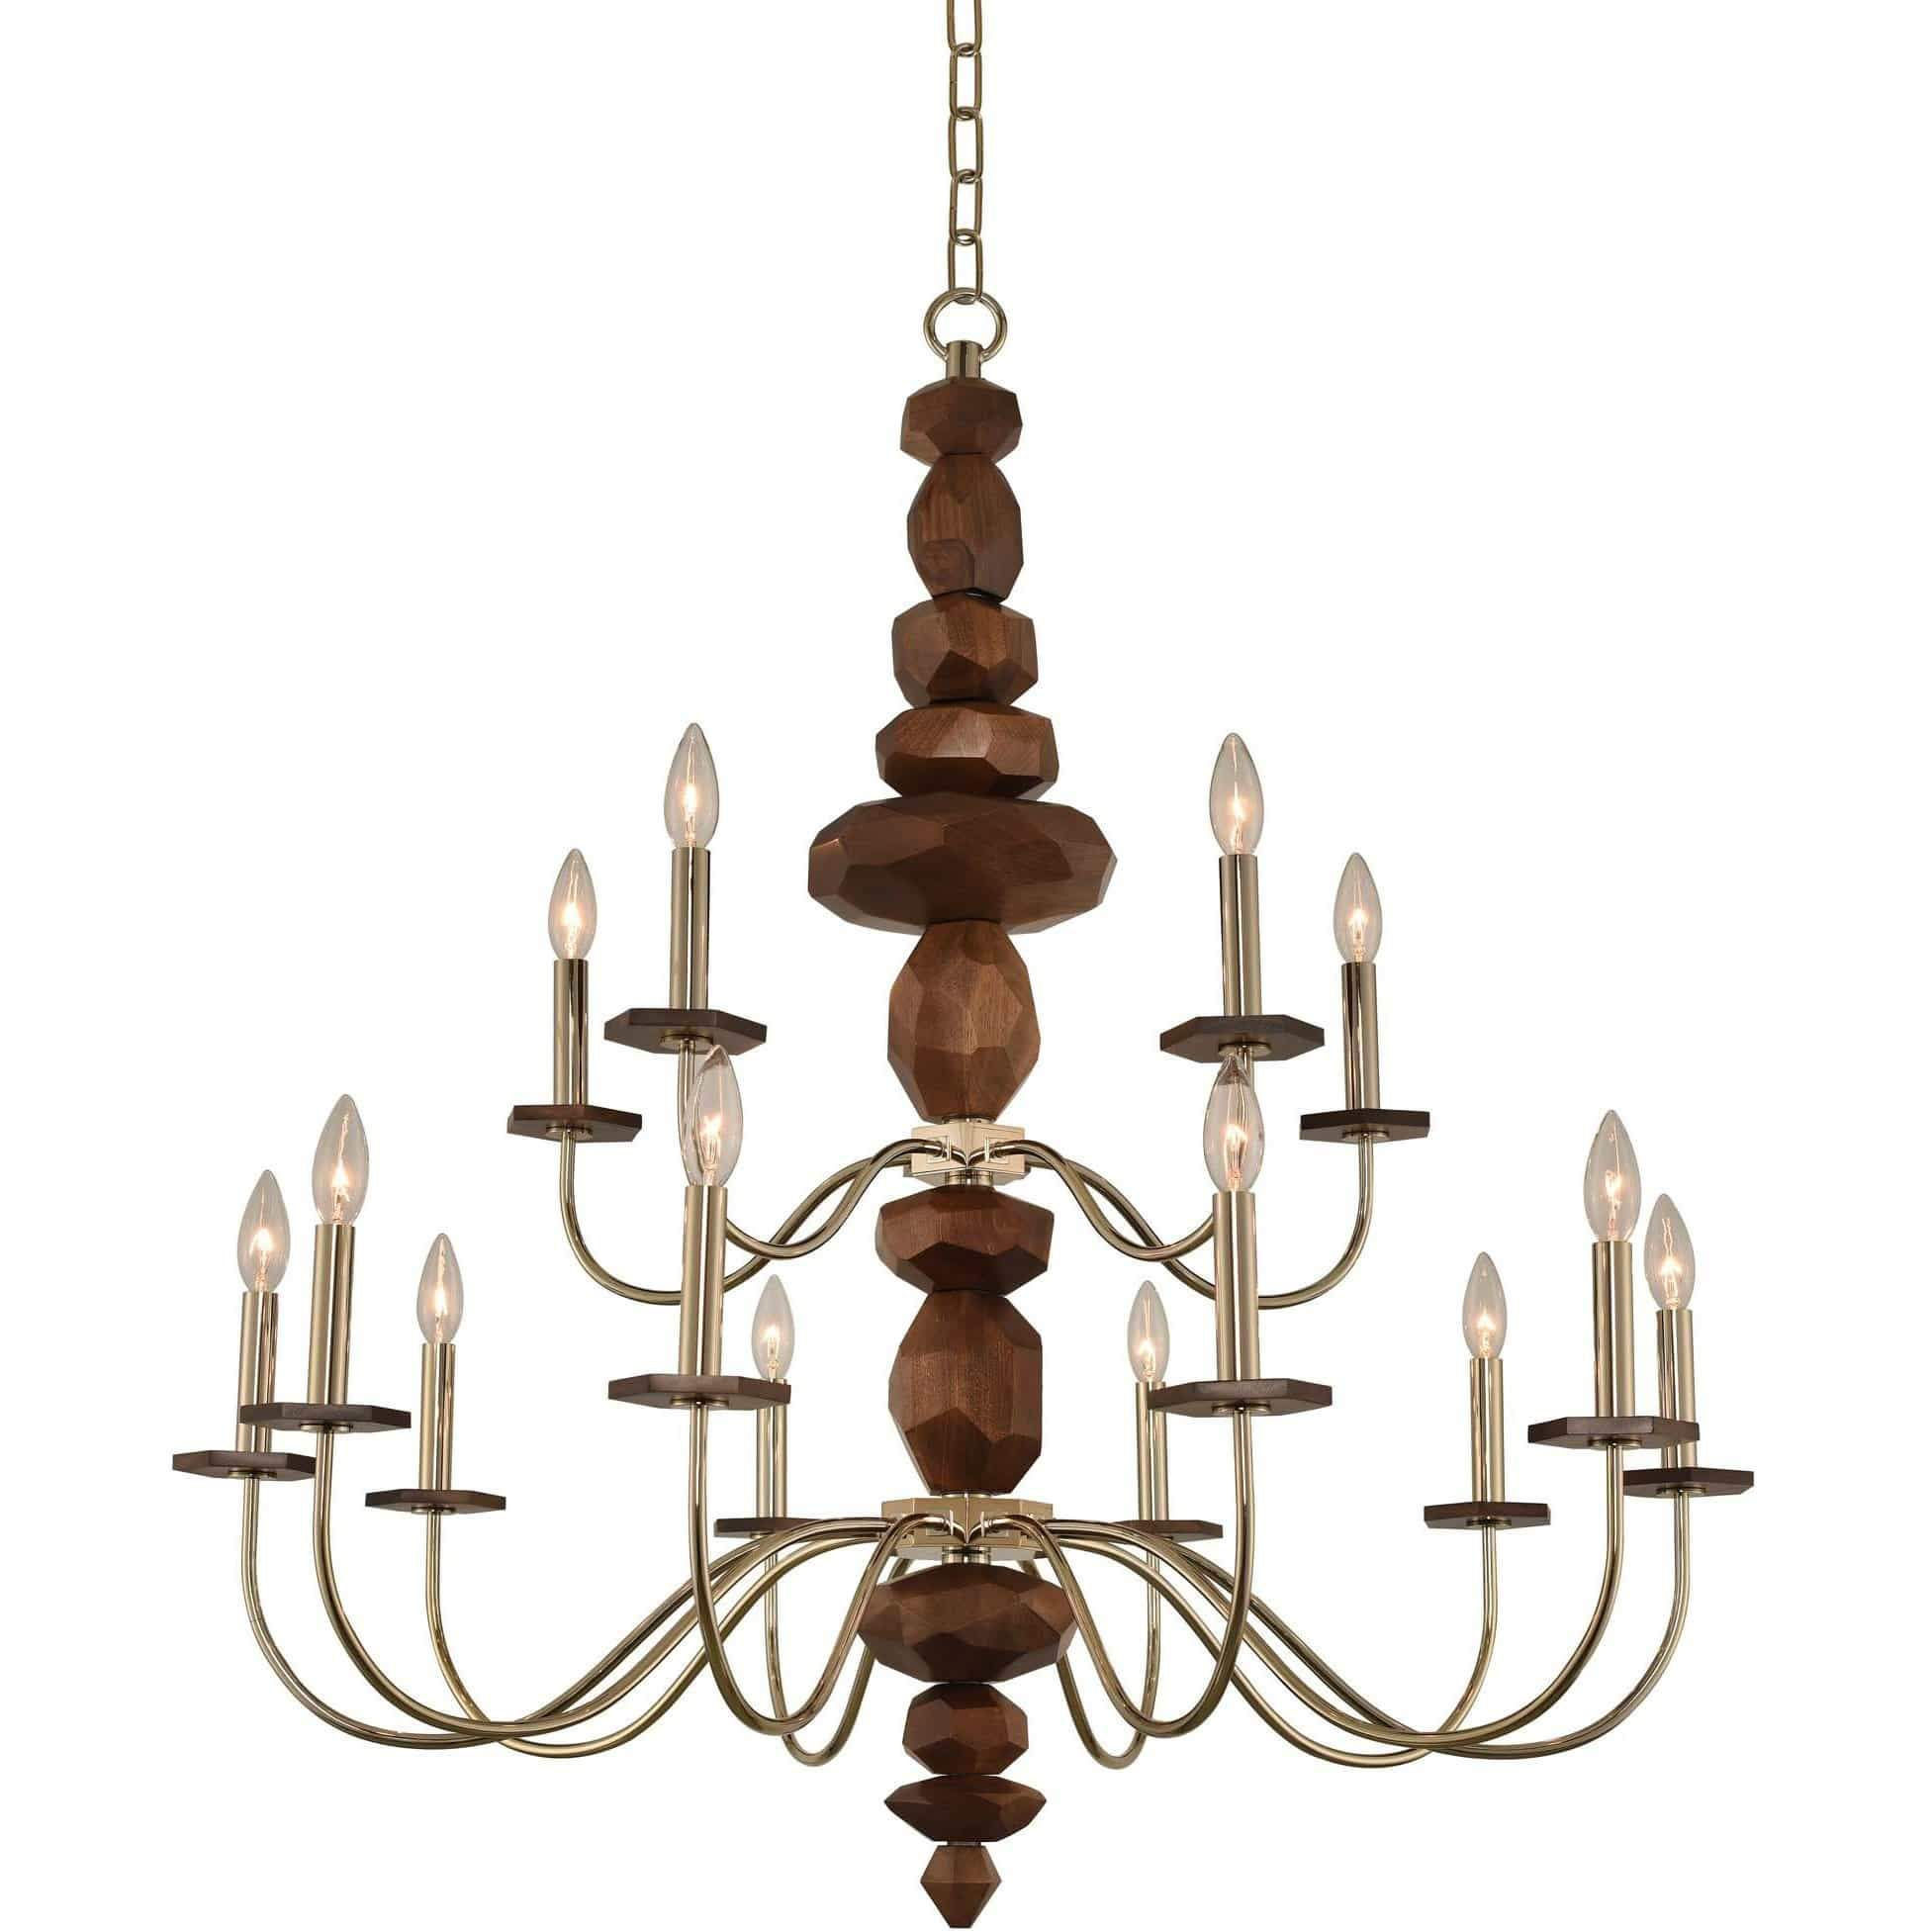 Kalco Lighting Chandeliers Champagne Gold Lassen (10+5) Light 2 Tier Chandelier By Kalco Lighting 304952